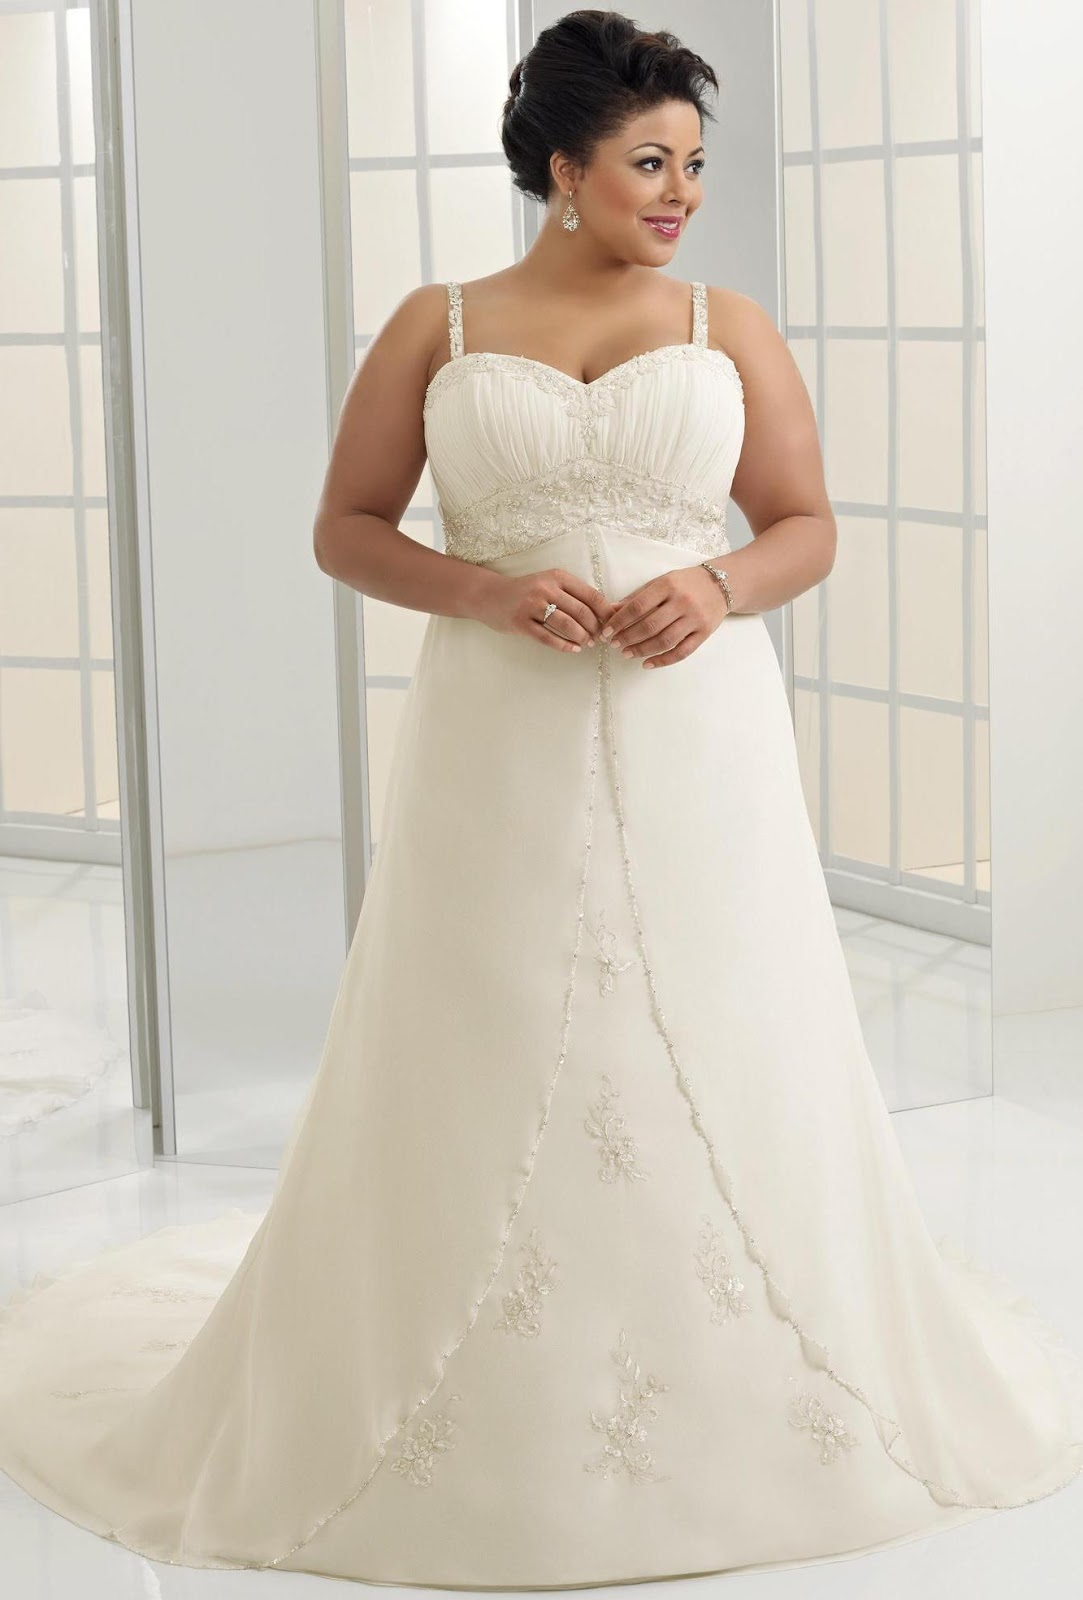 Wedding dresses designer wedding dresses cheap for Cheap couture wedding dresses